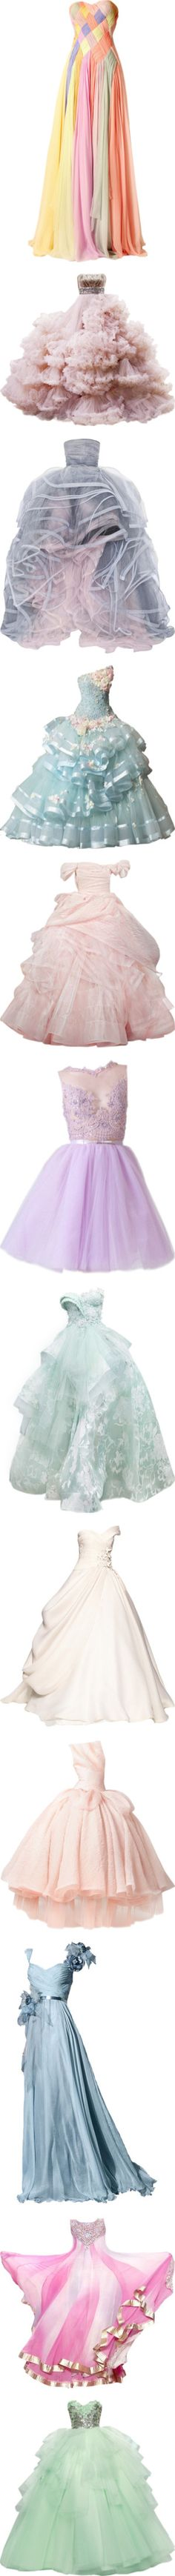 """""""candy coated couture"""" by missherjh ❤ liked on Polyvore jαɢlαdy"""